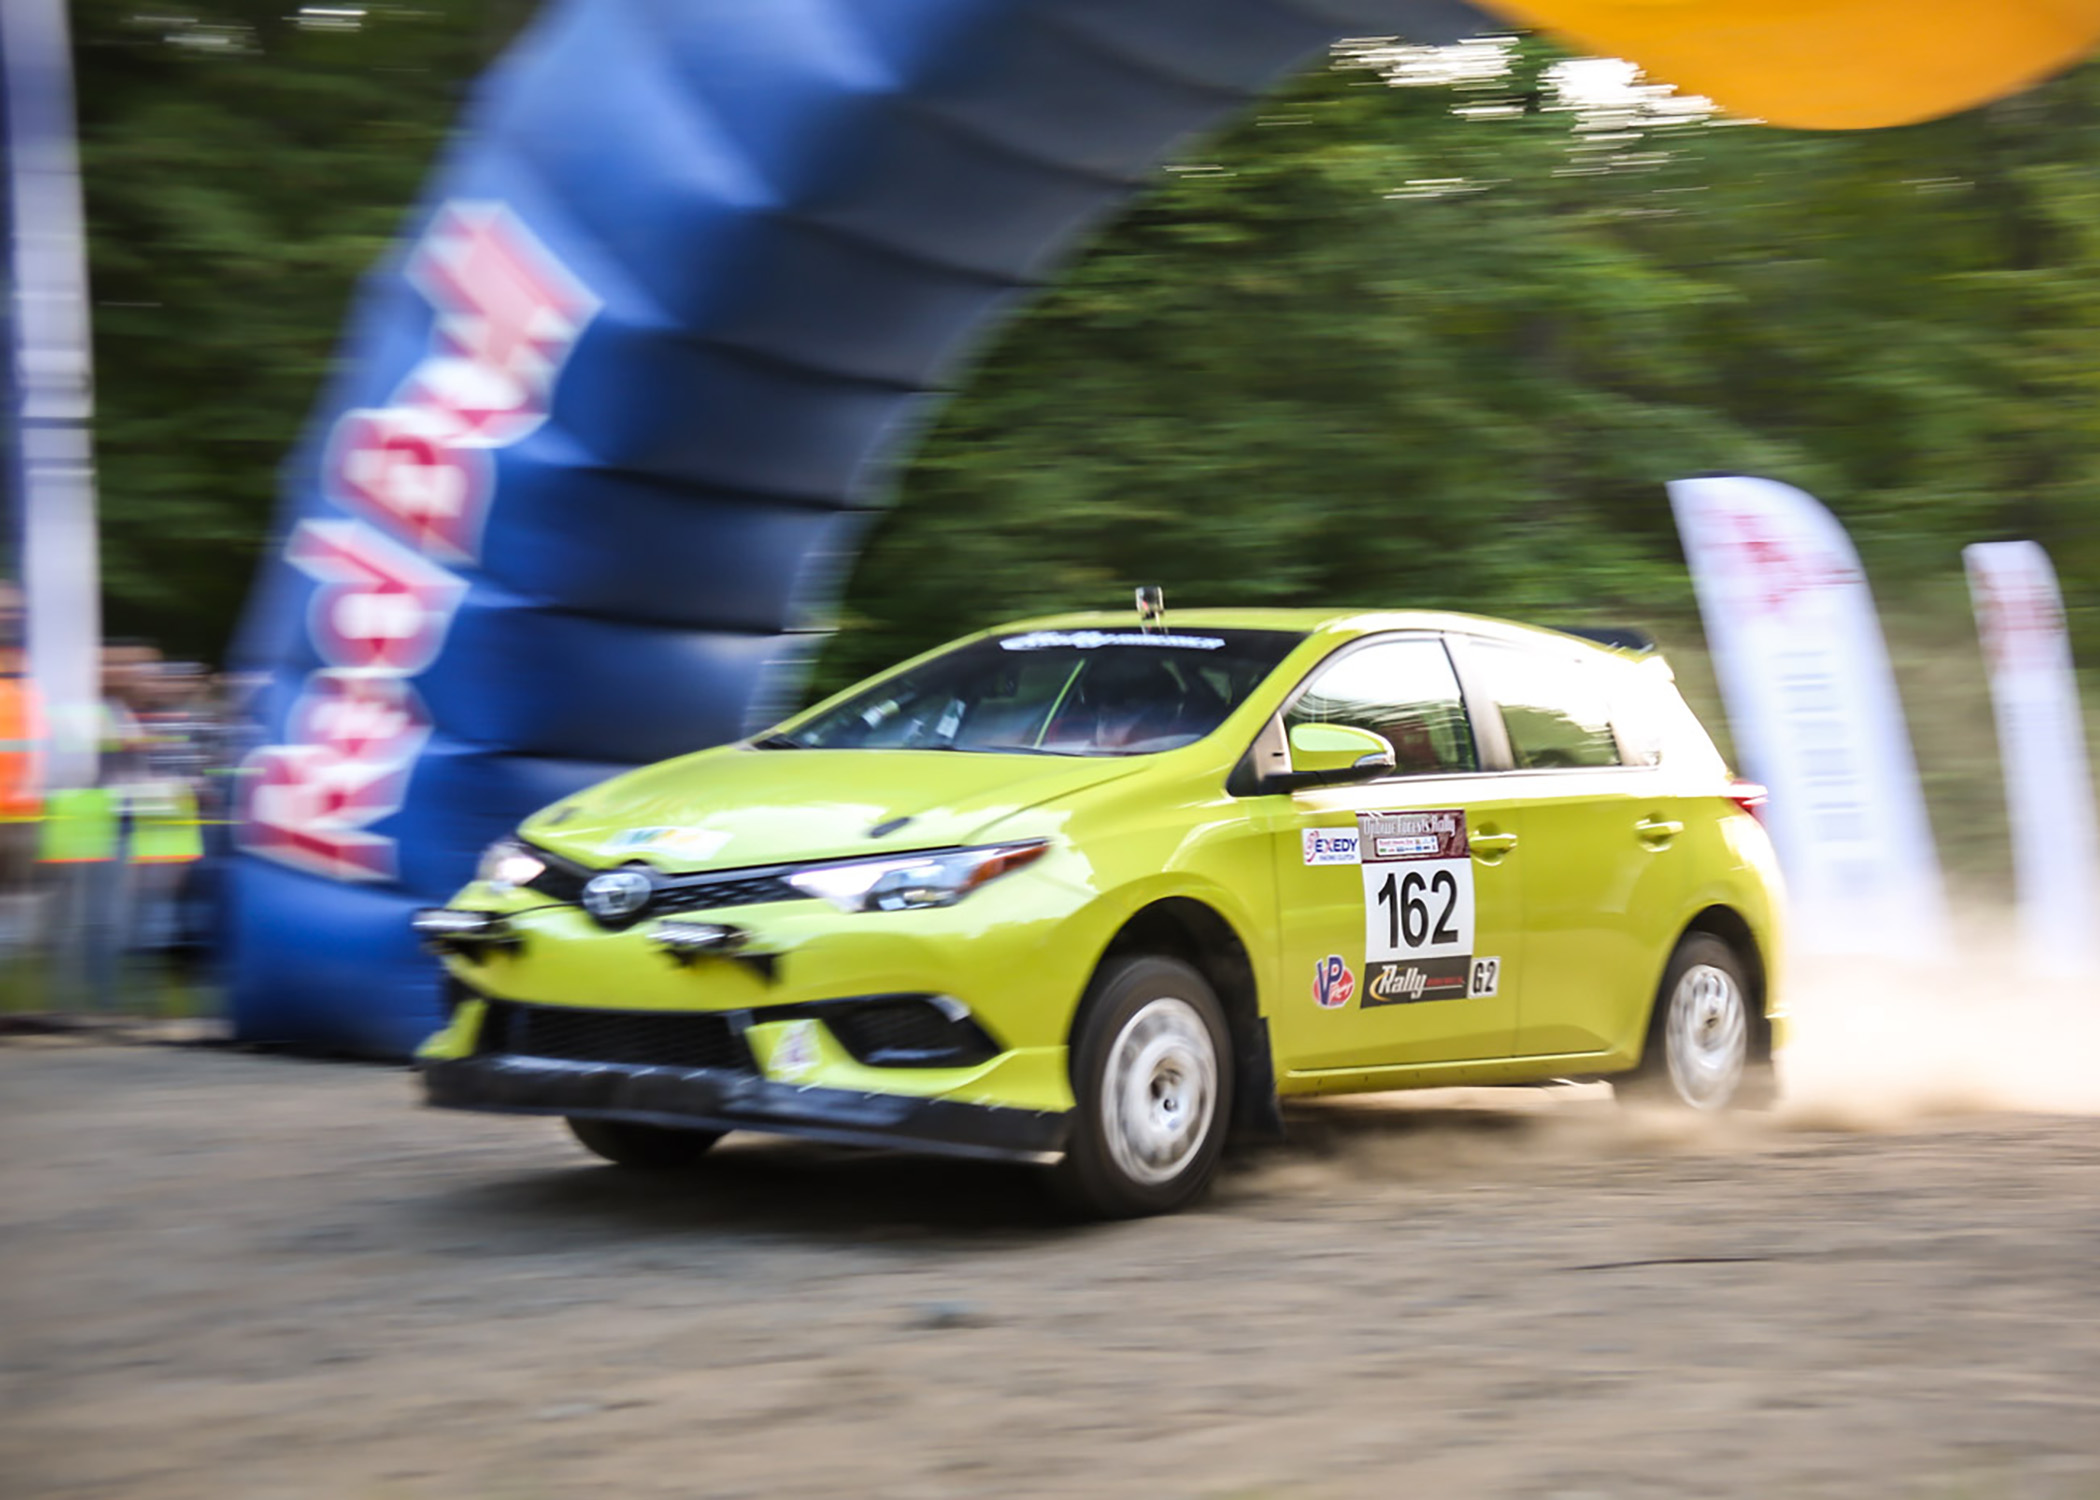 The Toyota Techncial Cneter Rally Team (TTCRT) drove their 2016 Corolla iM to a 3rd place finish at the 2016 Ojibwe Forest Rally.